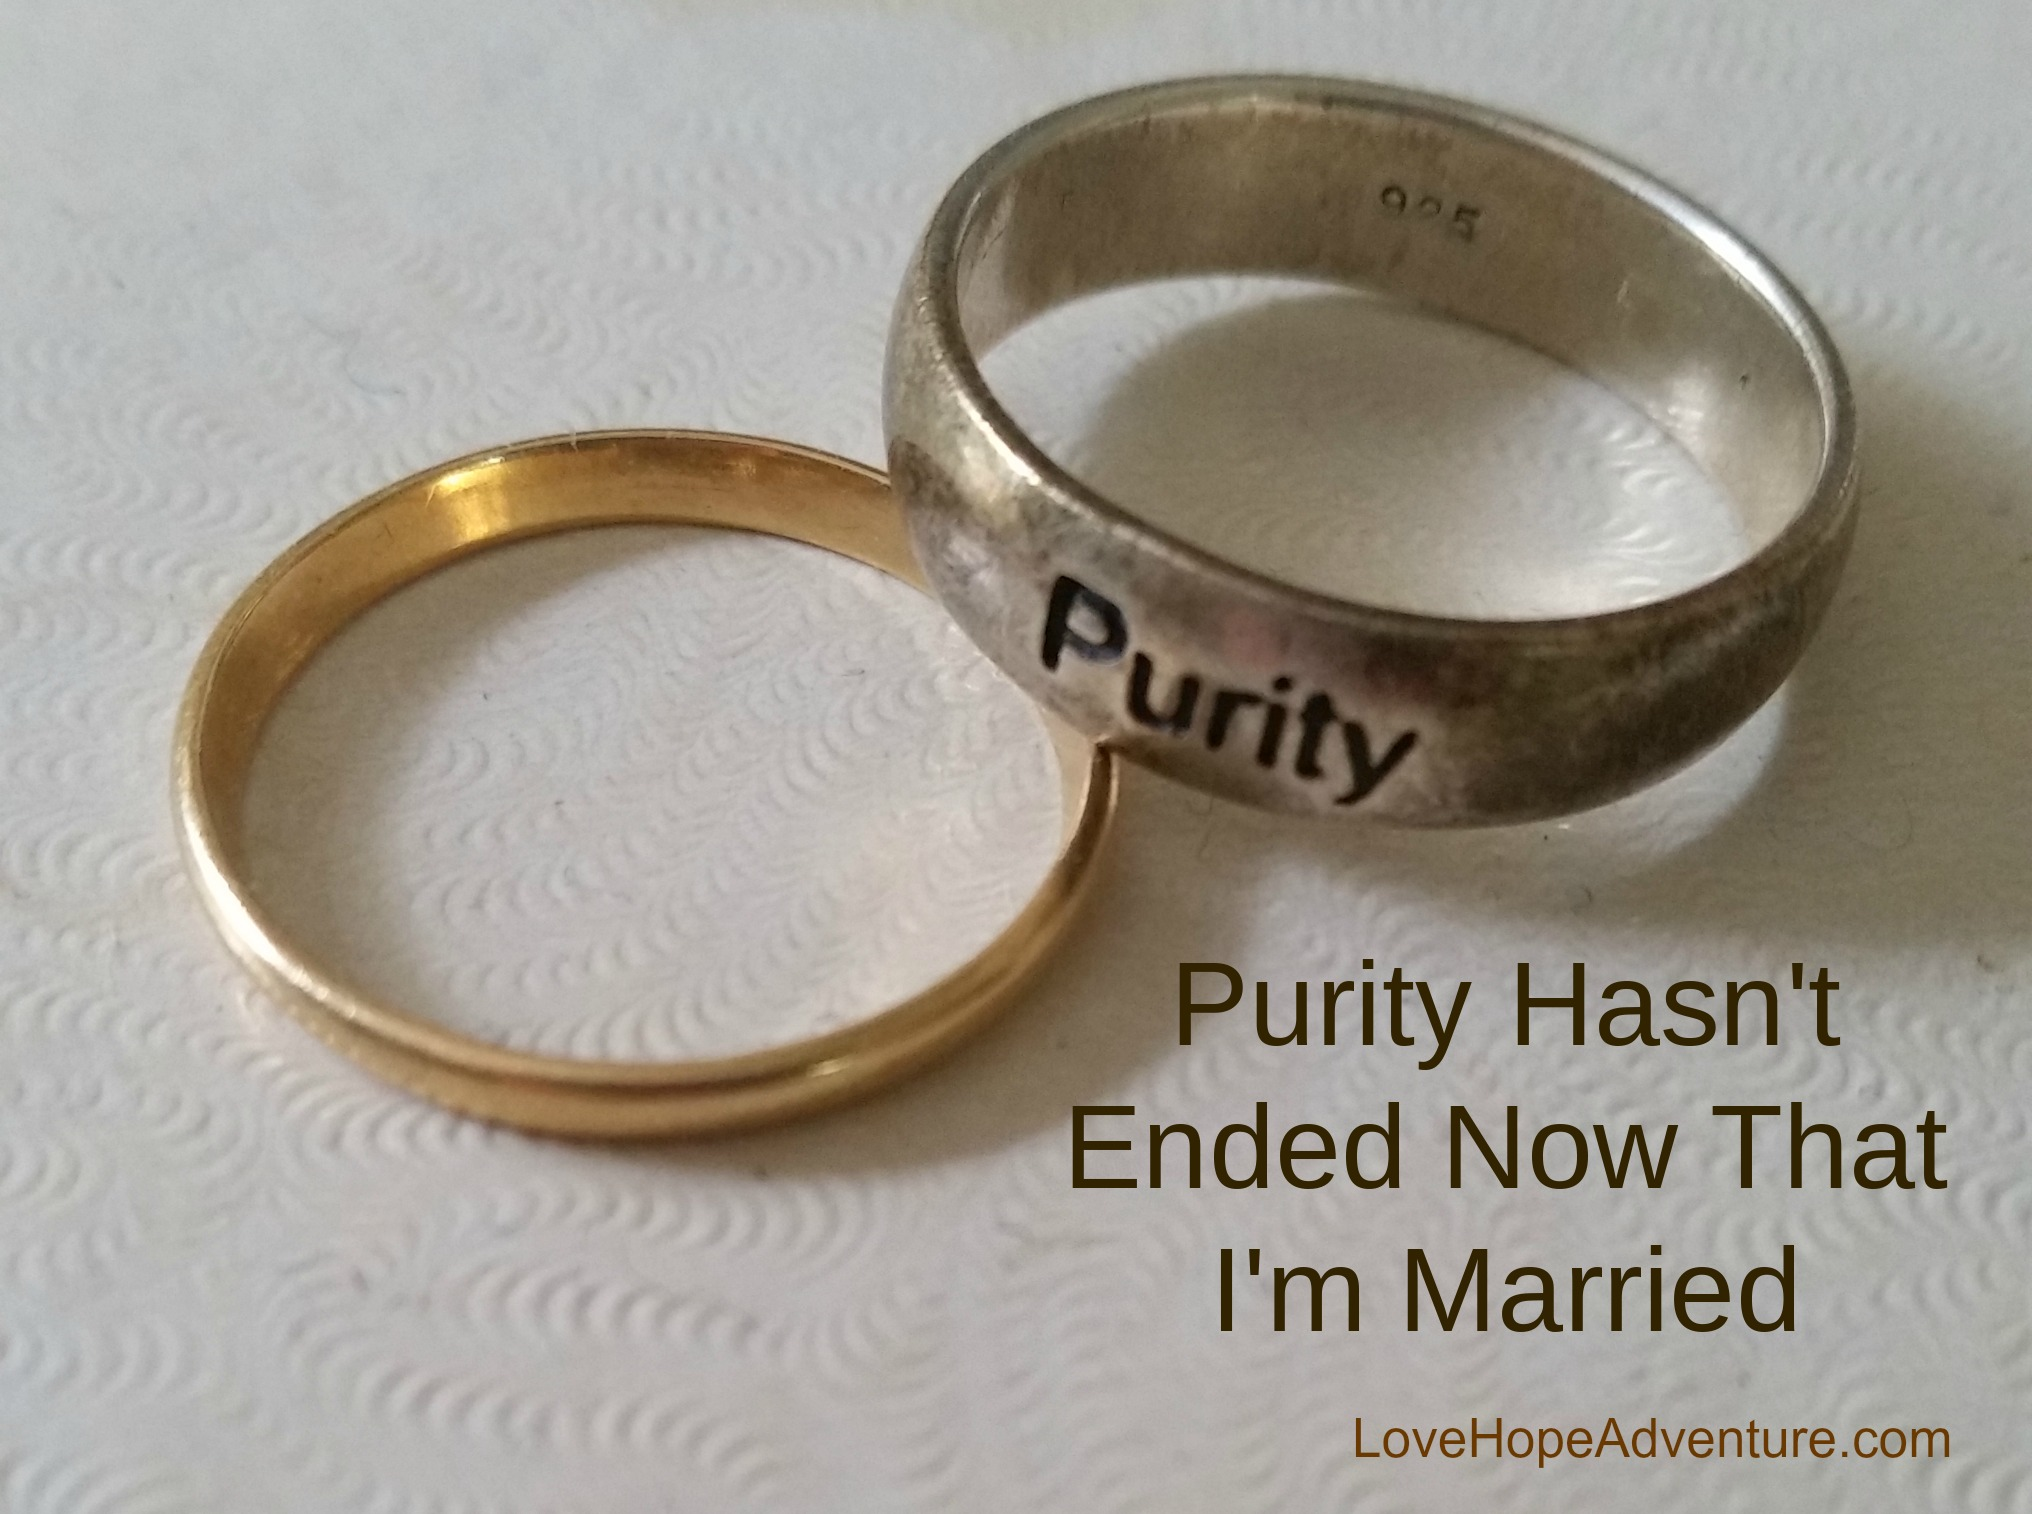 Purity hasn't ended now that I'm married